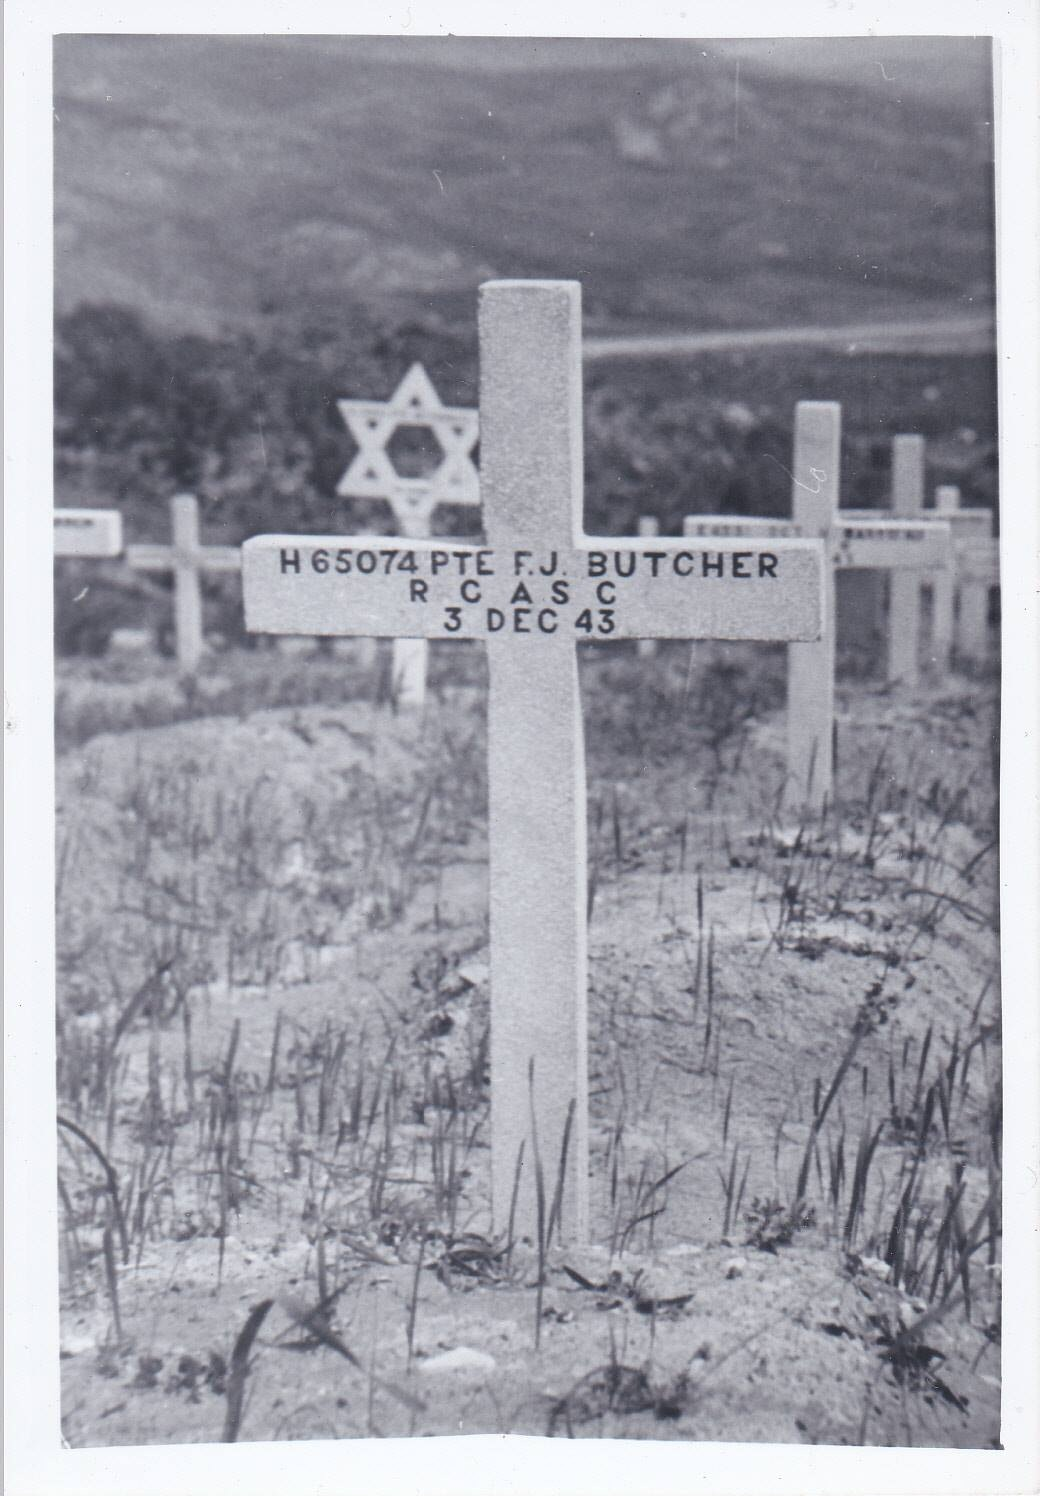 Temporary Grave Marker– Grave Marker photograph was sent to the parents of 'Frederick James Butcher', H/65074, died Dec 3, 1943, age 21 of the Royal Canadian Army.  Buried in the Agira Canadian War Cemetery, Italy.